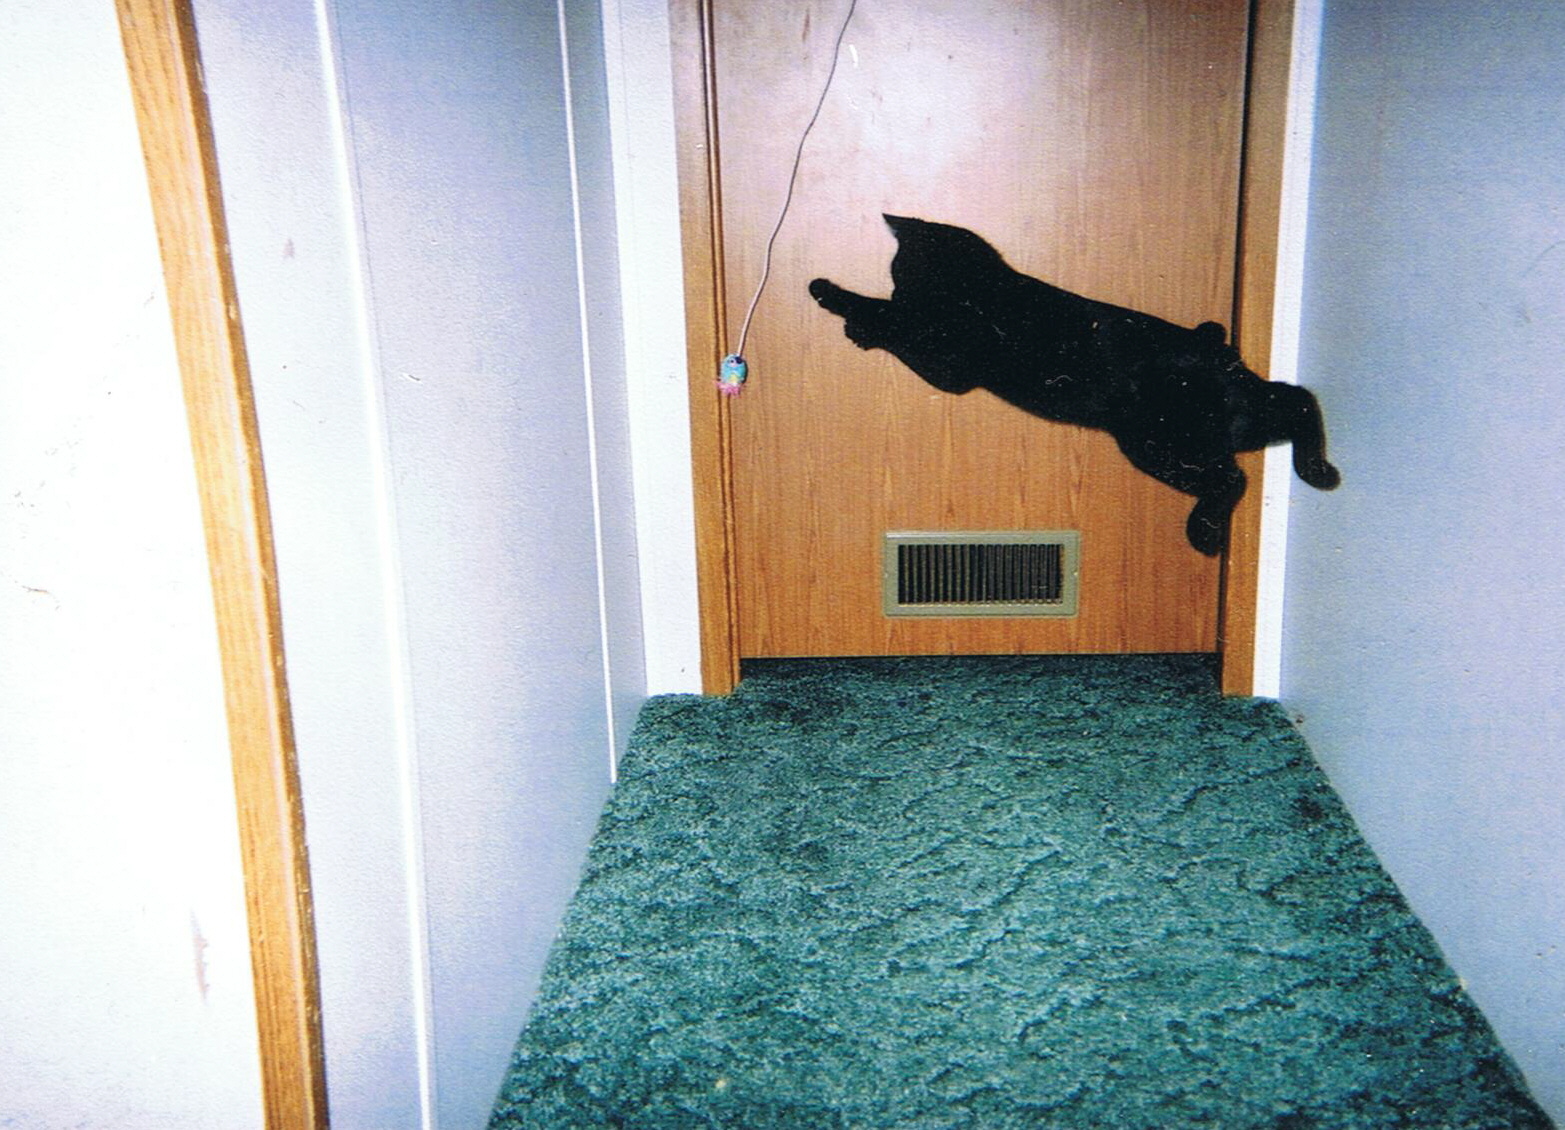 flying cat demeanor